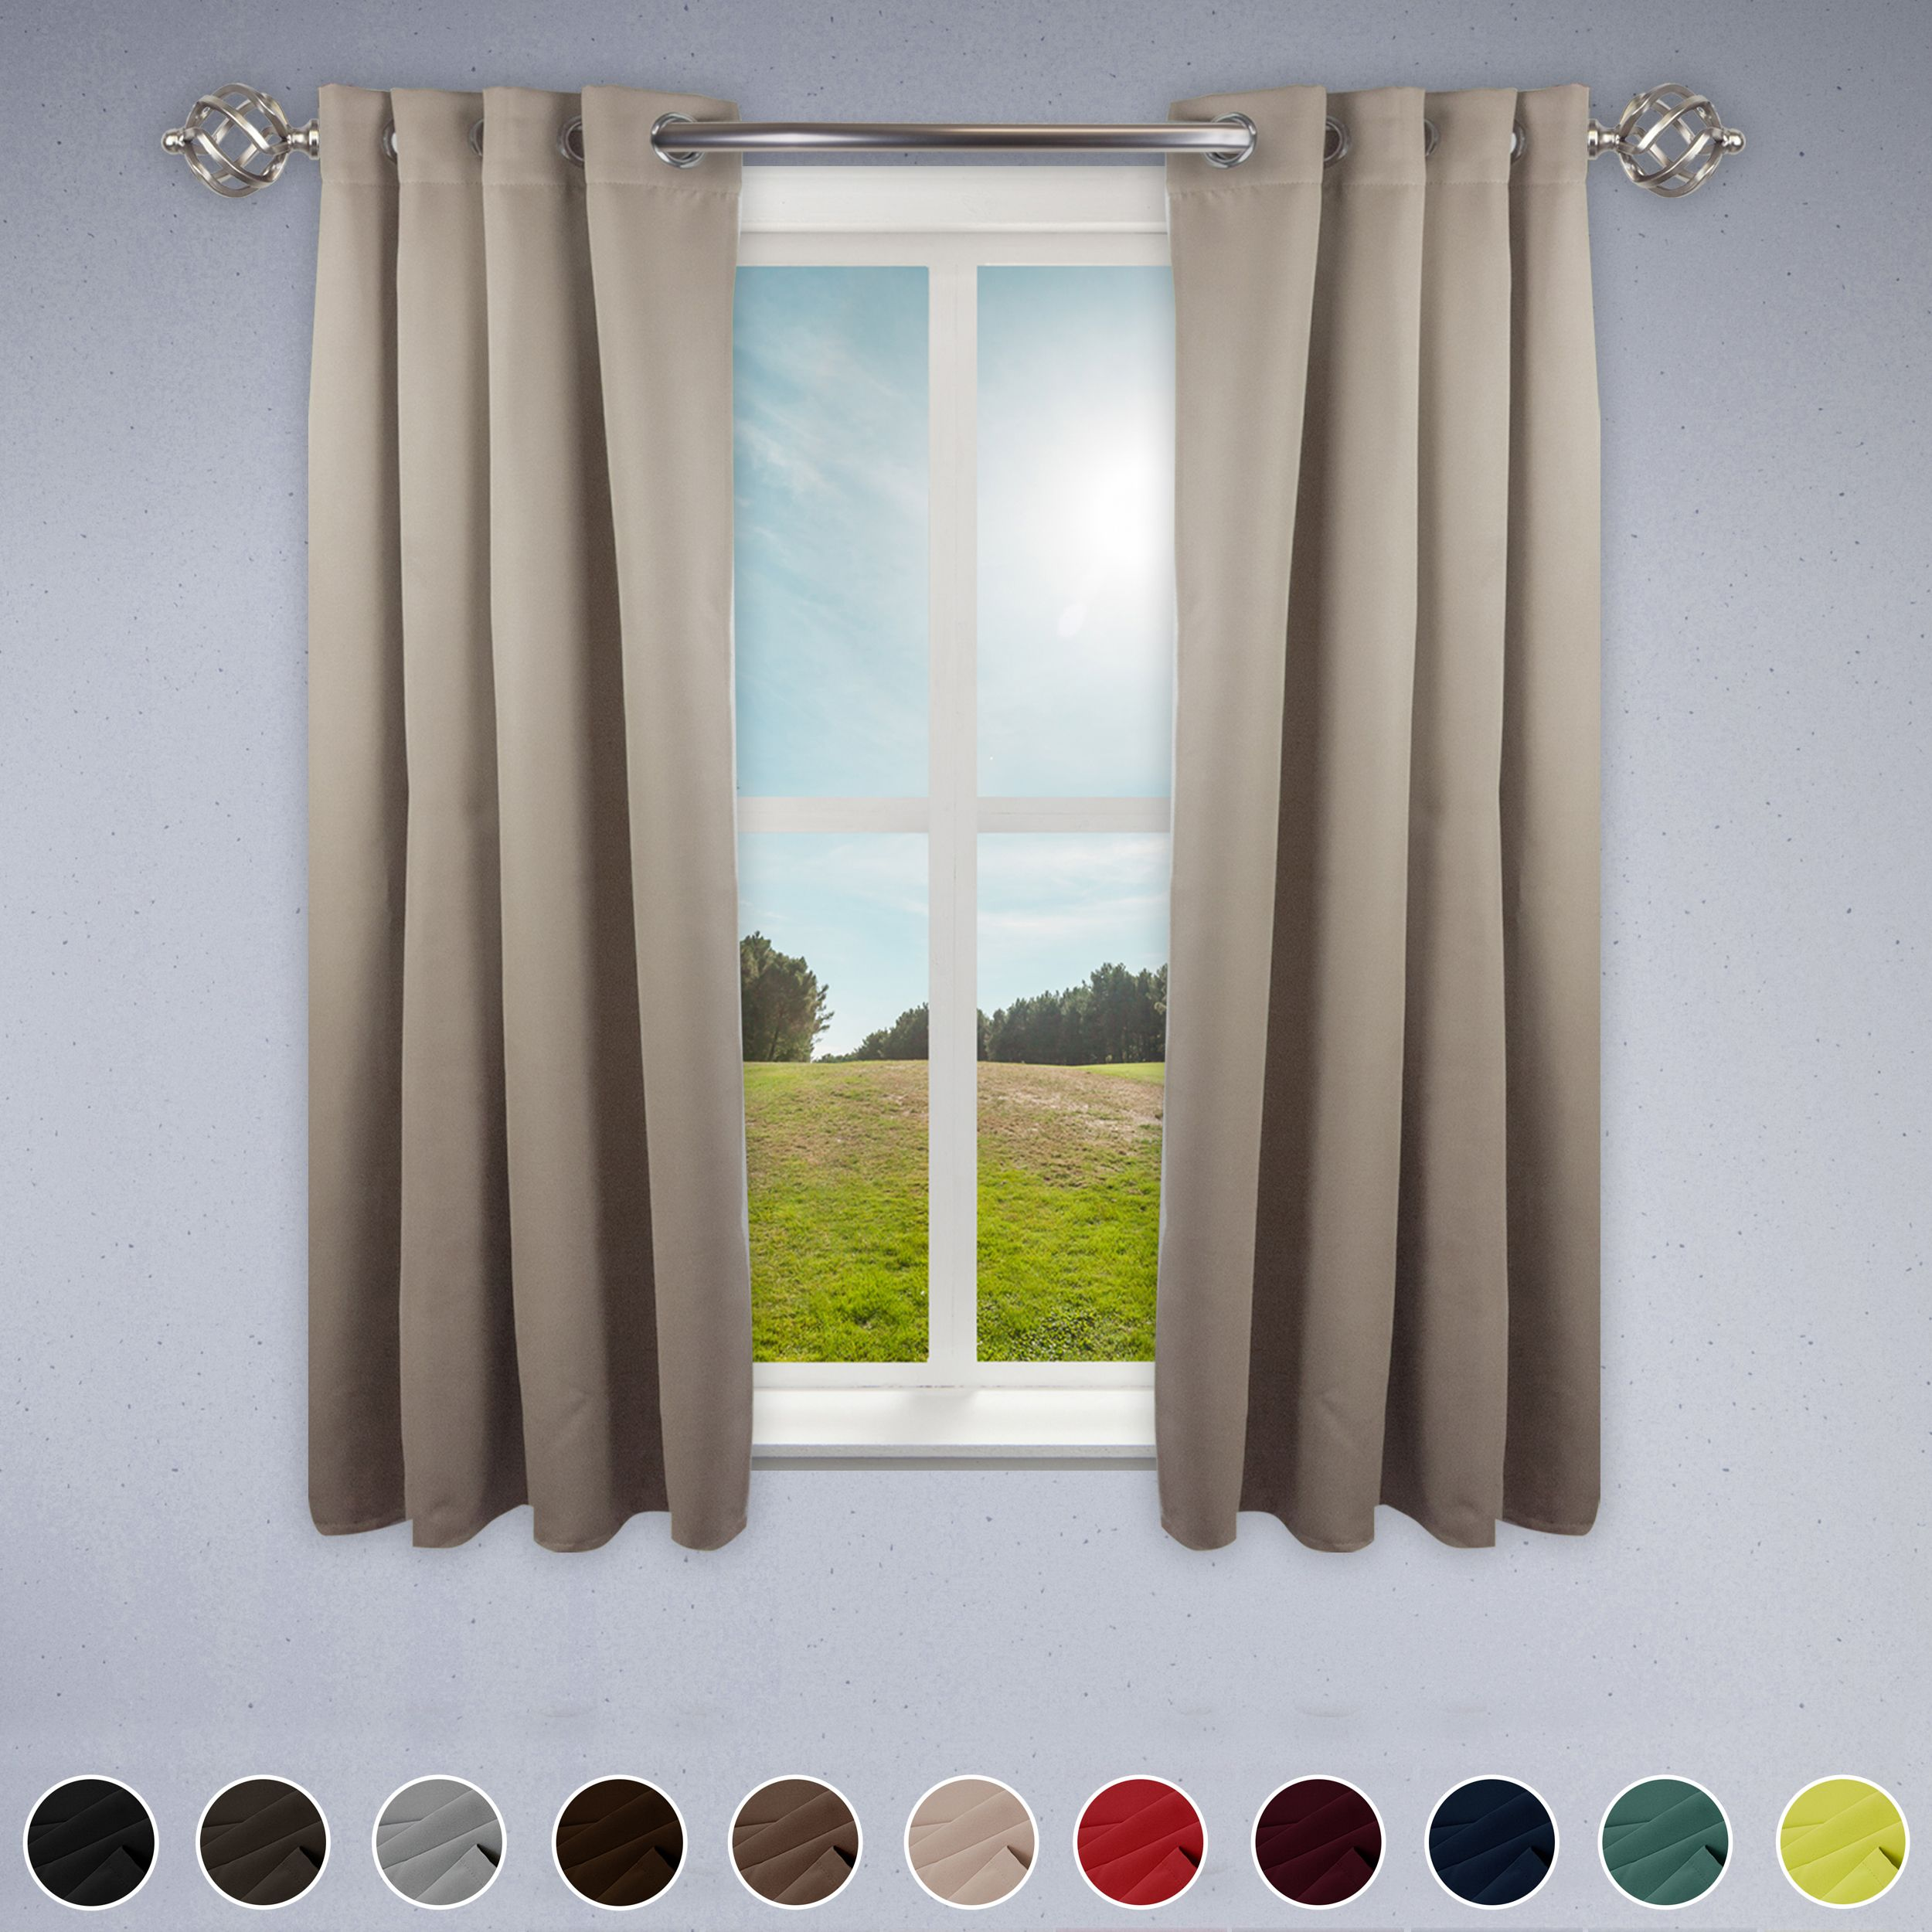 Rod Desyne Room Darkening Curtain 52 Inch Width 1 Panel Light